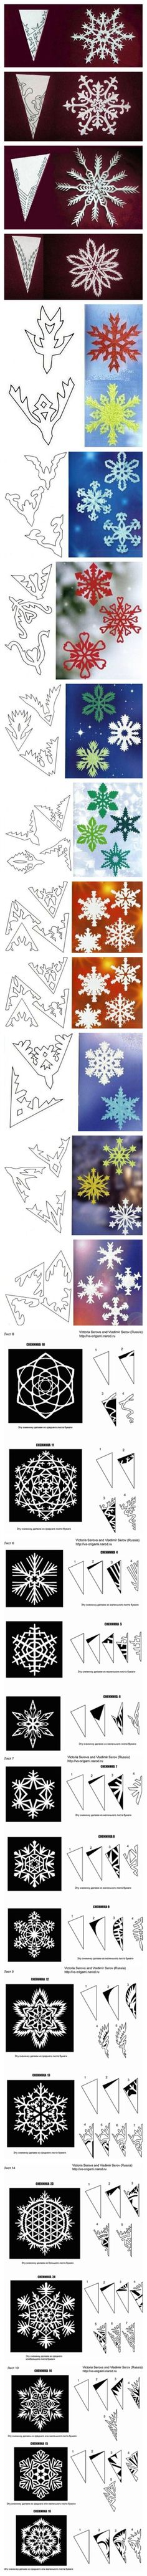 Patterns for paper snowflakes